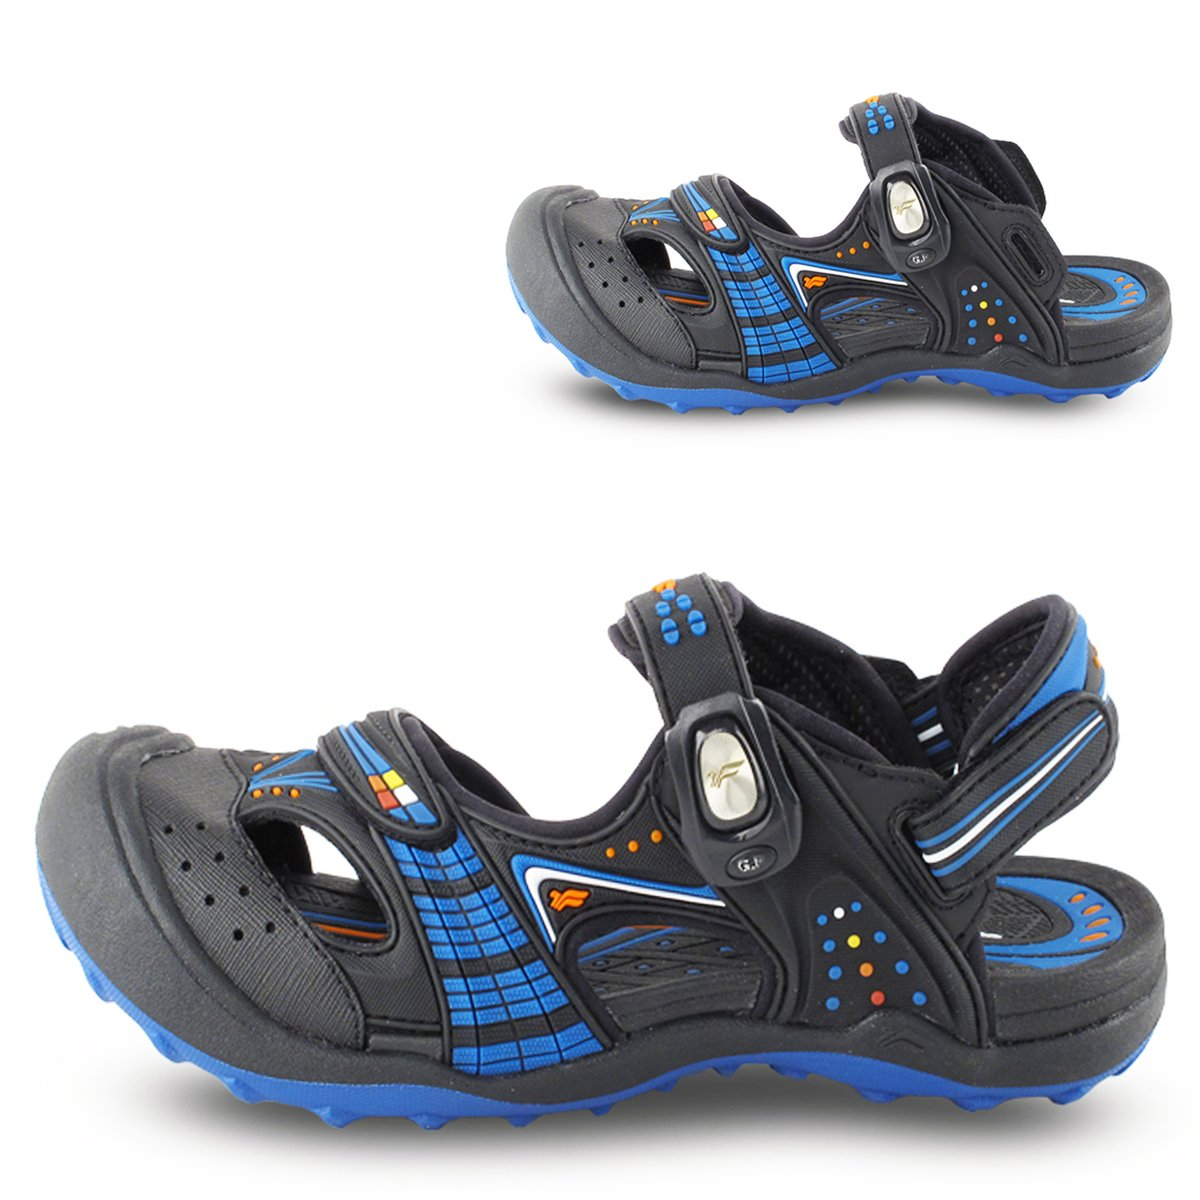 Toe Guard Sandals for Boys /& Girls Easy On//Off SNAP Lock Closure